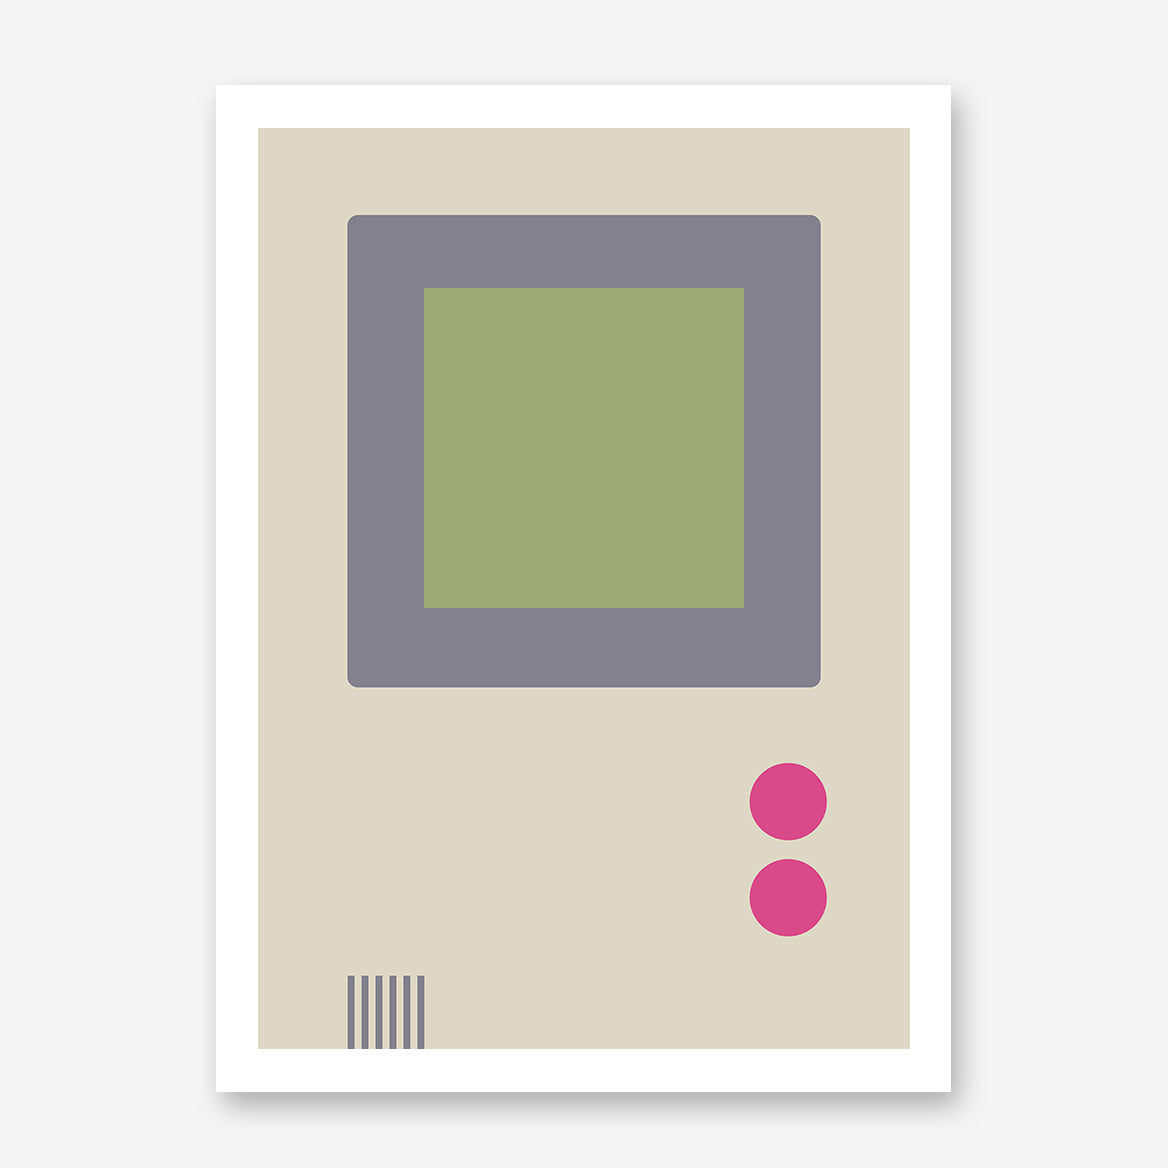 Gaming illustration poster print with retro video game console.